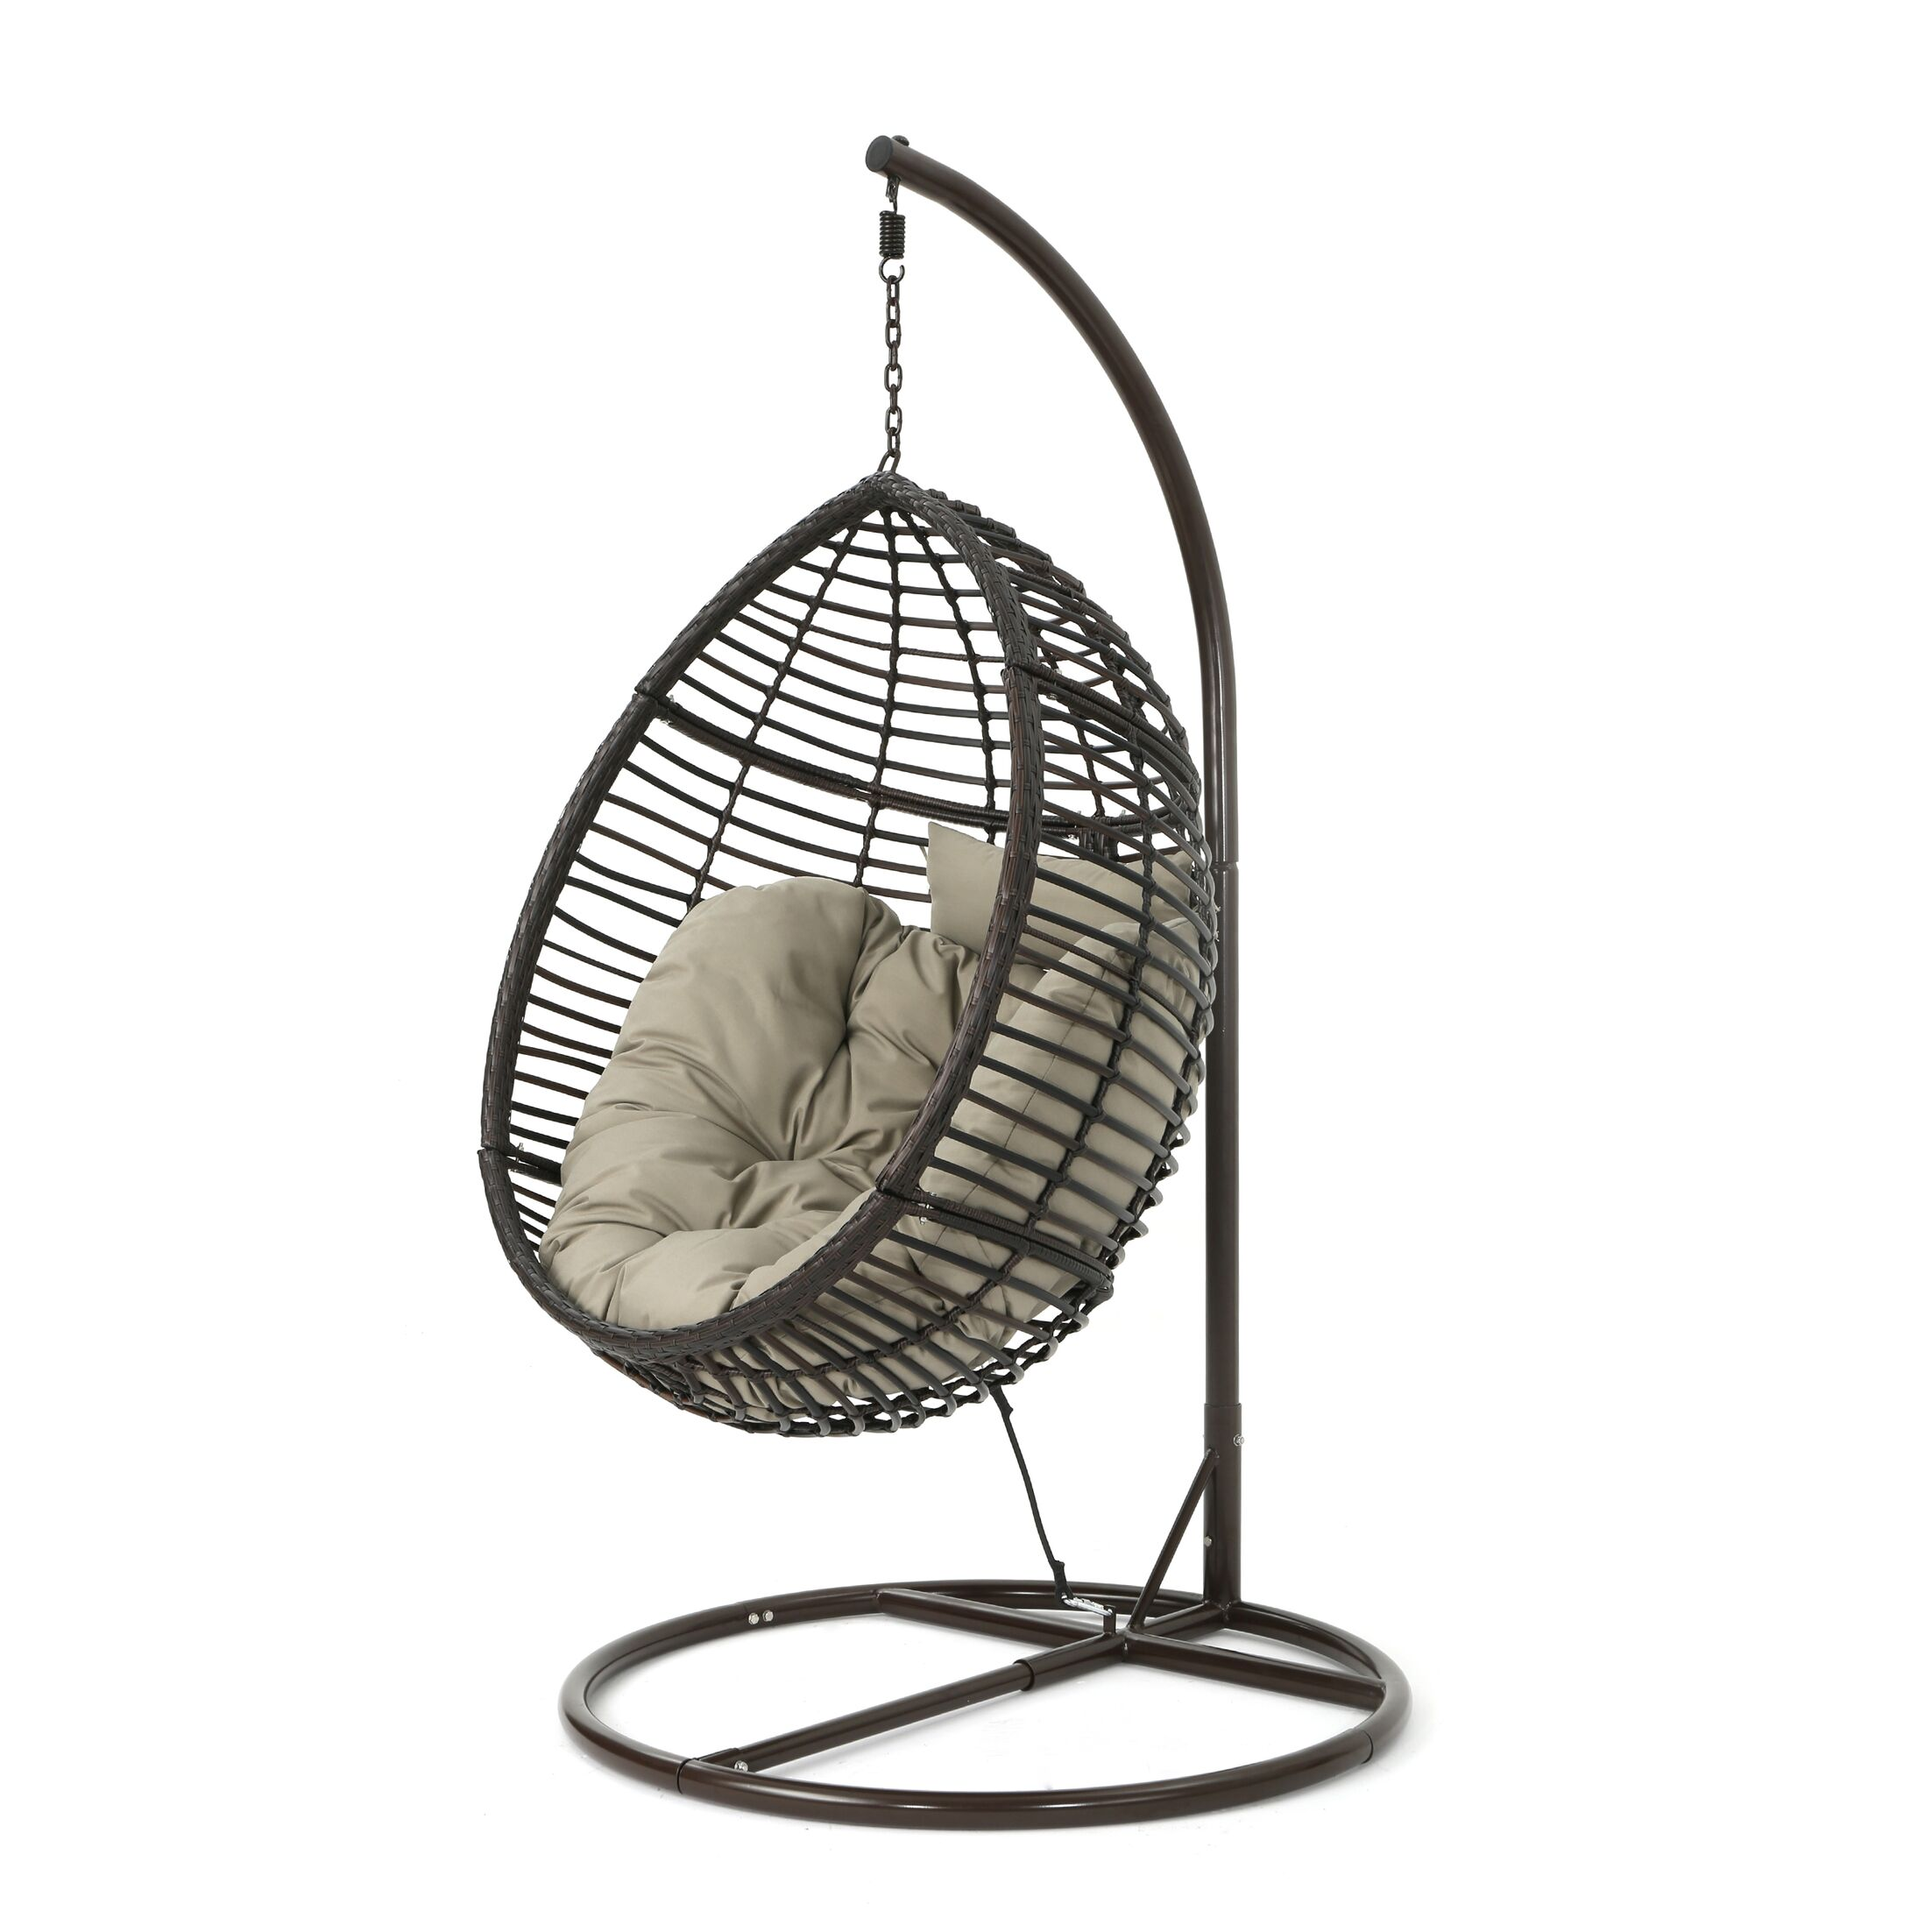 Weller Outdoor Wicker Basket Swing Chair with Stand Color: Brown